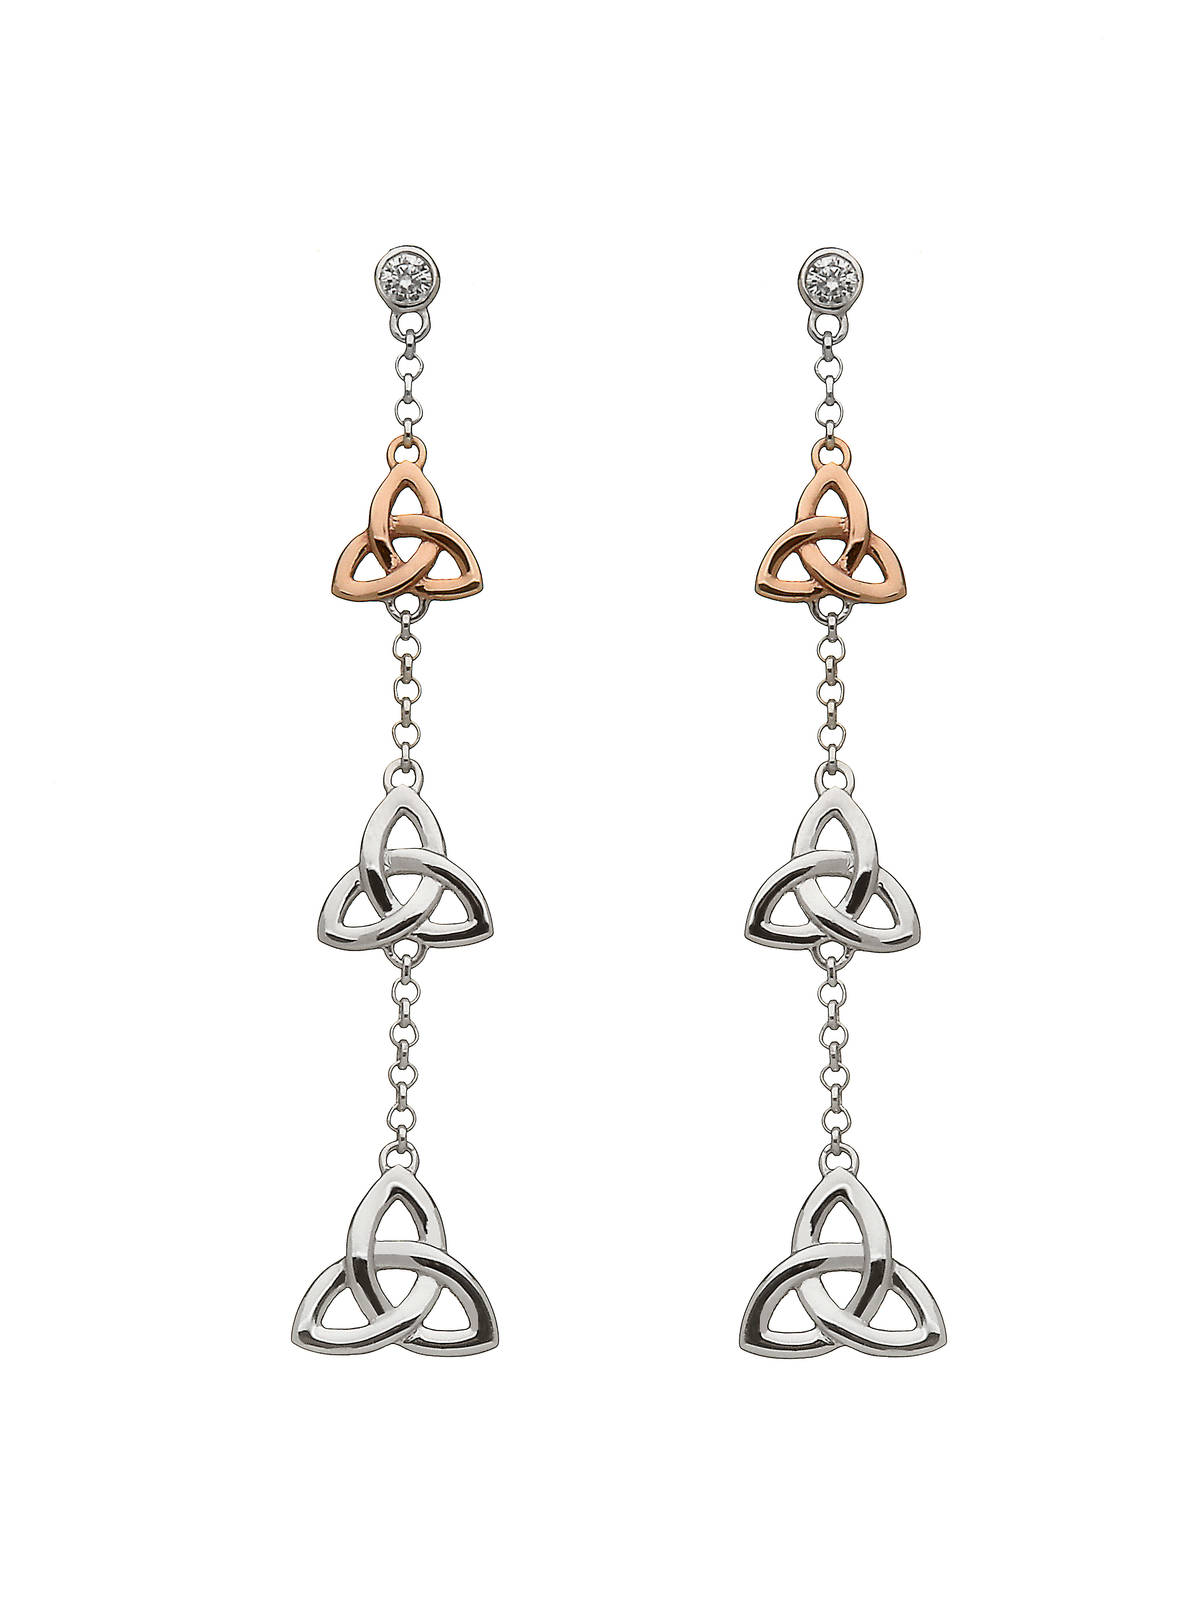 silver and rare Irish rose gold trinity knot 3 drop earrings with czs with top trinity knot made from gold.